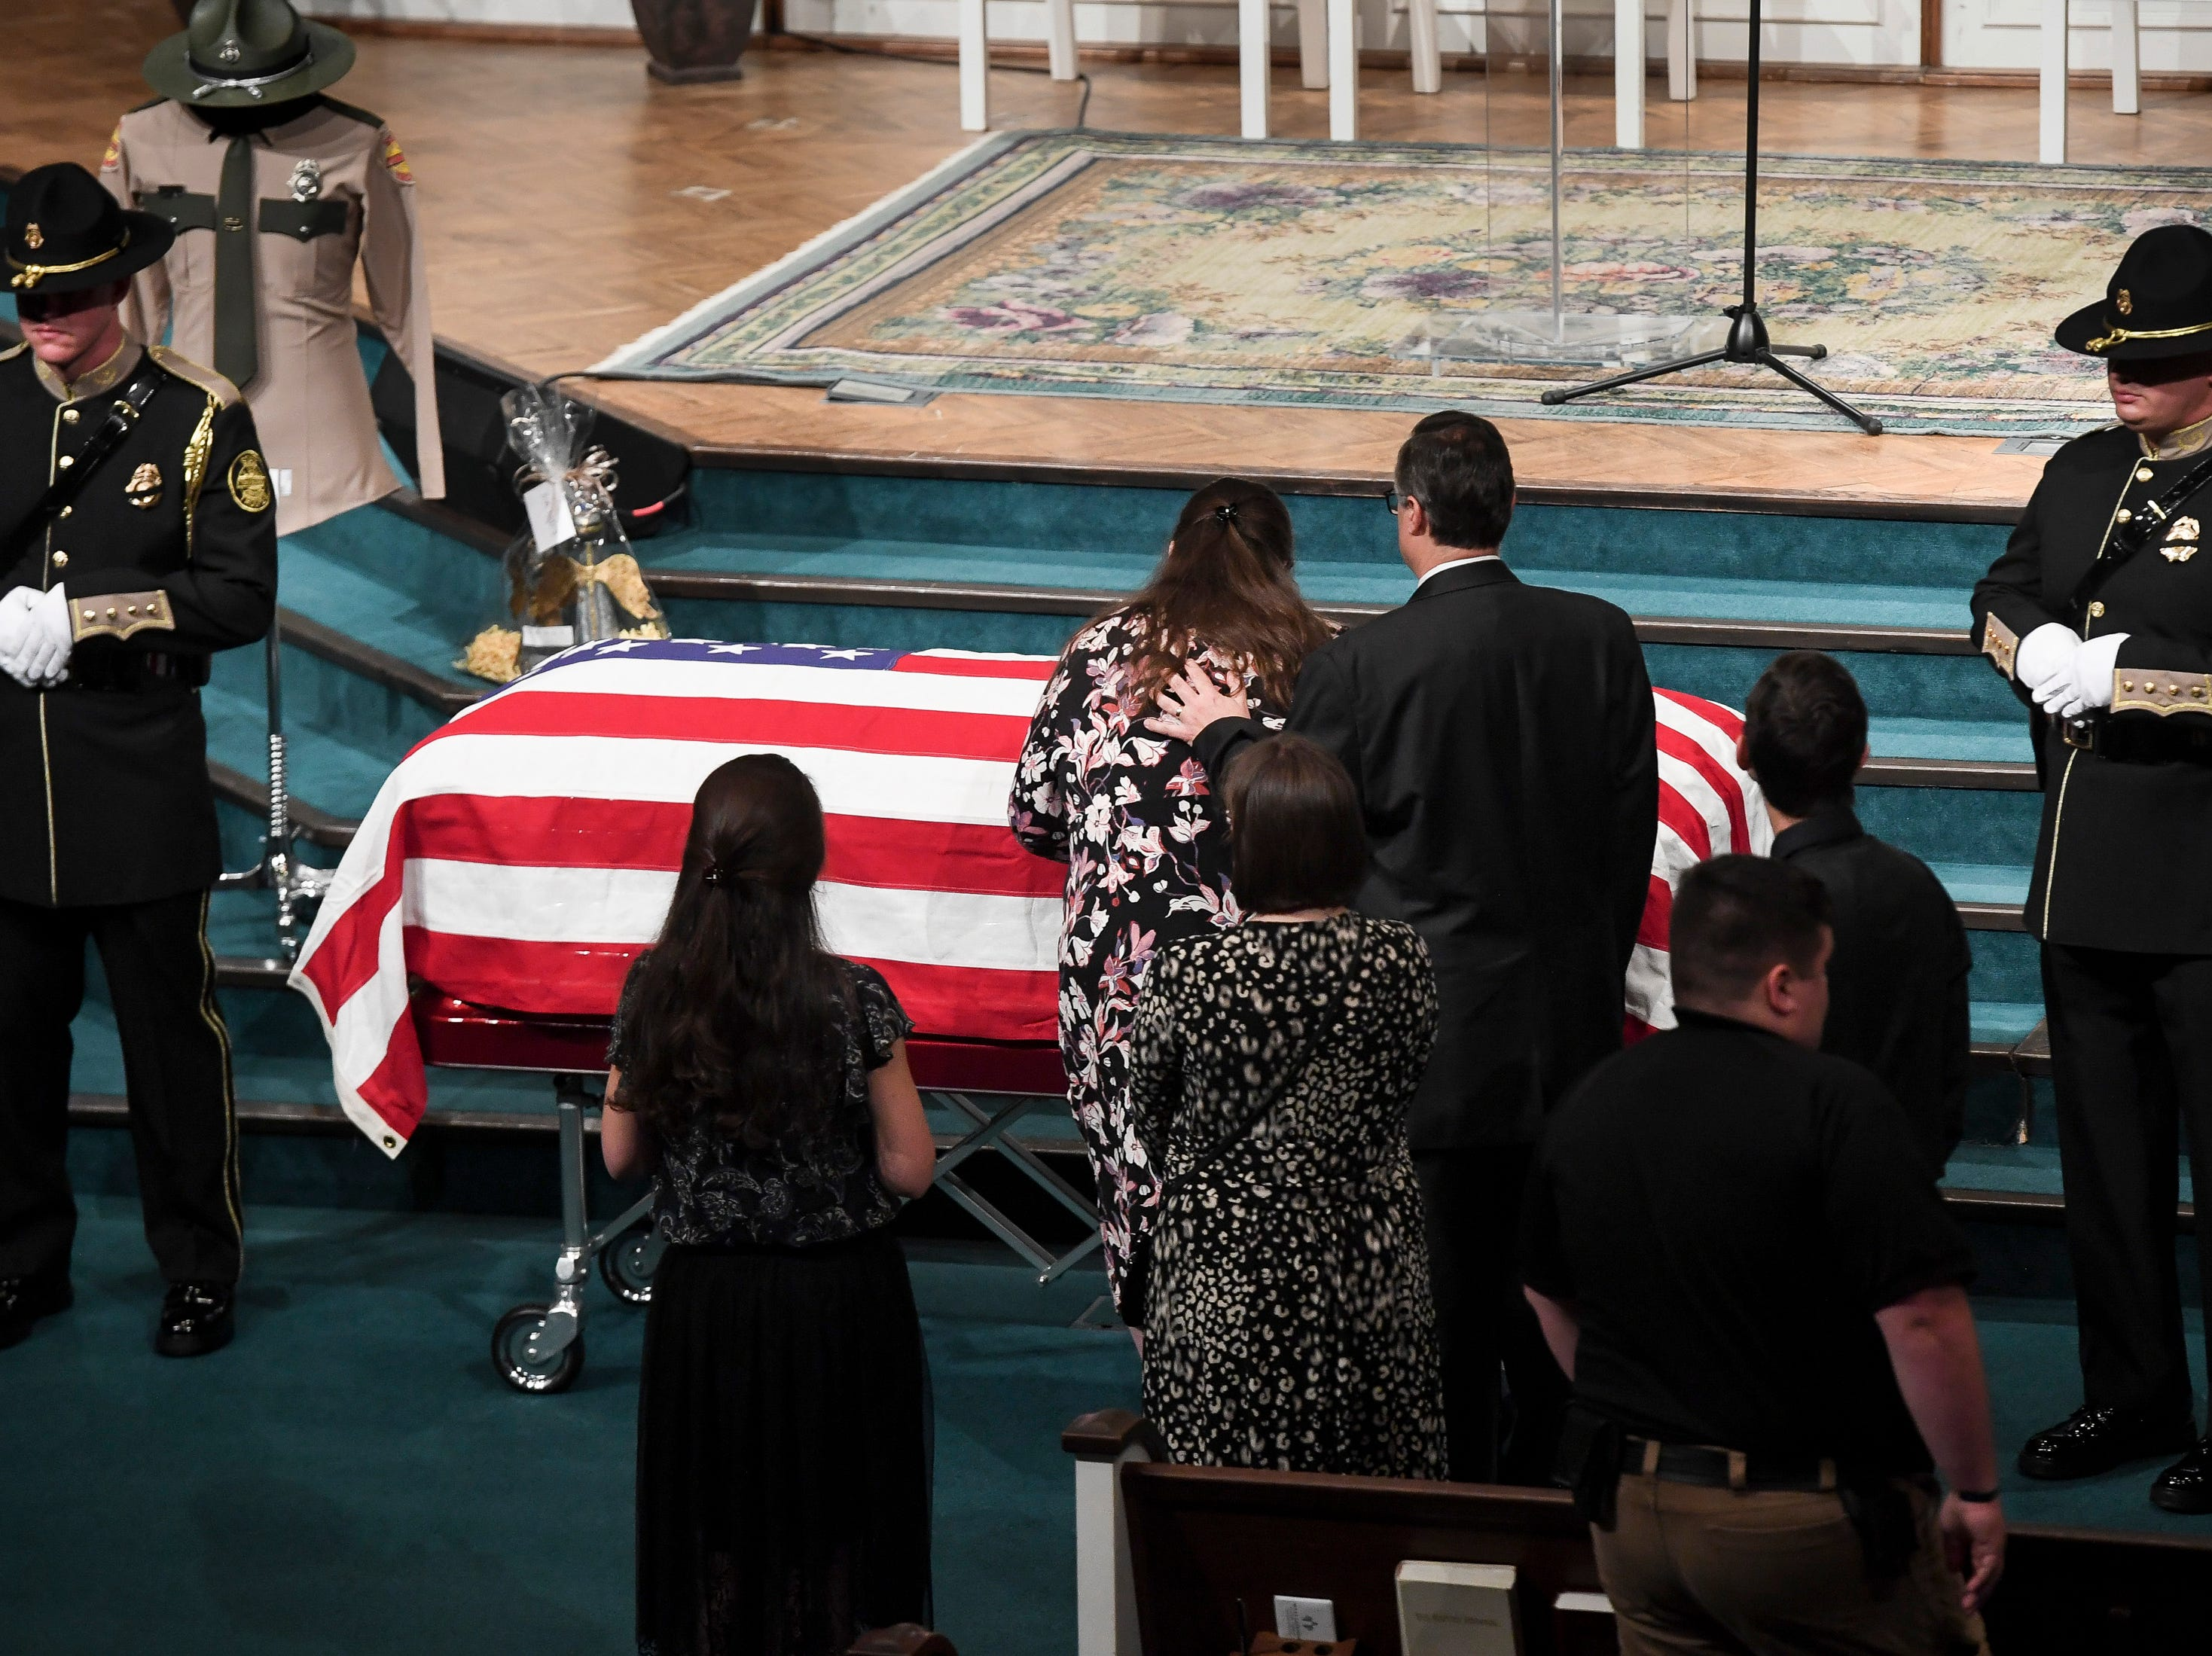 Christy Gatti and  Chris Gatti view their son's casket before the funeral service for Tennessee State Trooper Matthew Gatti at West Jackson Baptist Church in Jackson, Tenn., Monday, May 13, 2019. Gatti died in the line of duty in an accident while responding to a car fire on I-40 in Madison County on May 6.